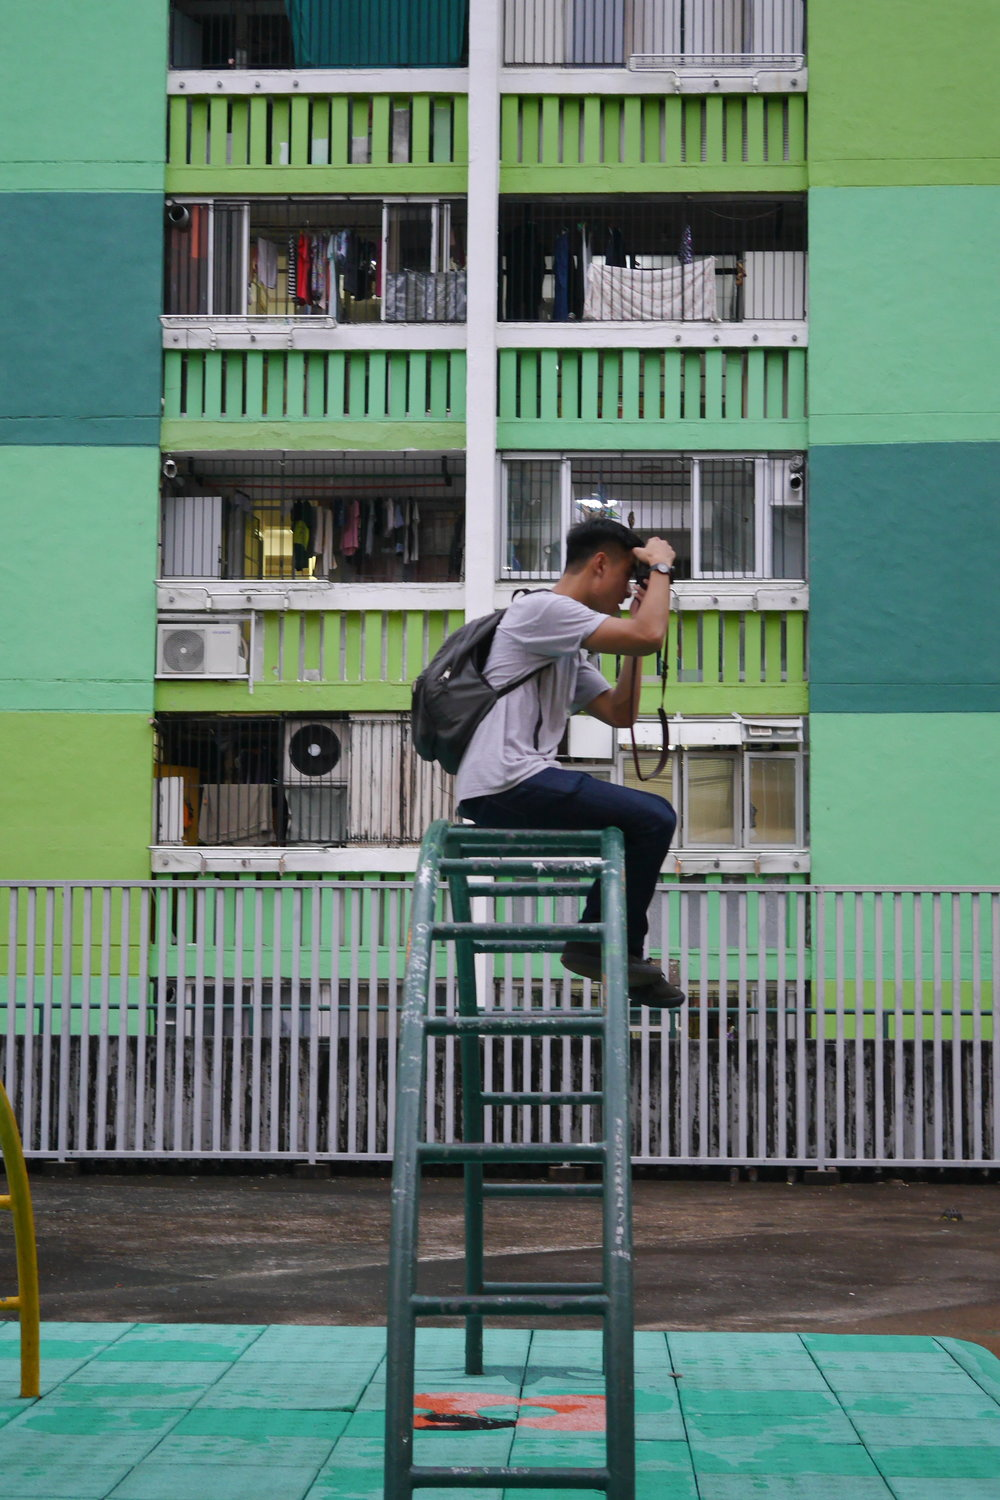 Learn about what's life in Hong Kong back in the days at a public housing estate in Kowloon.